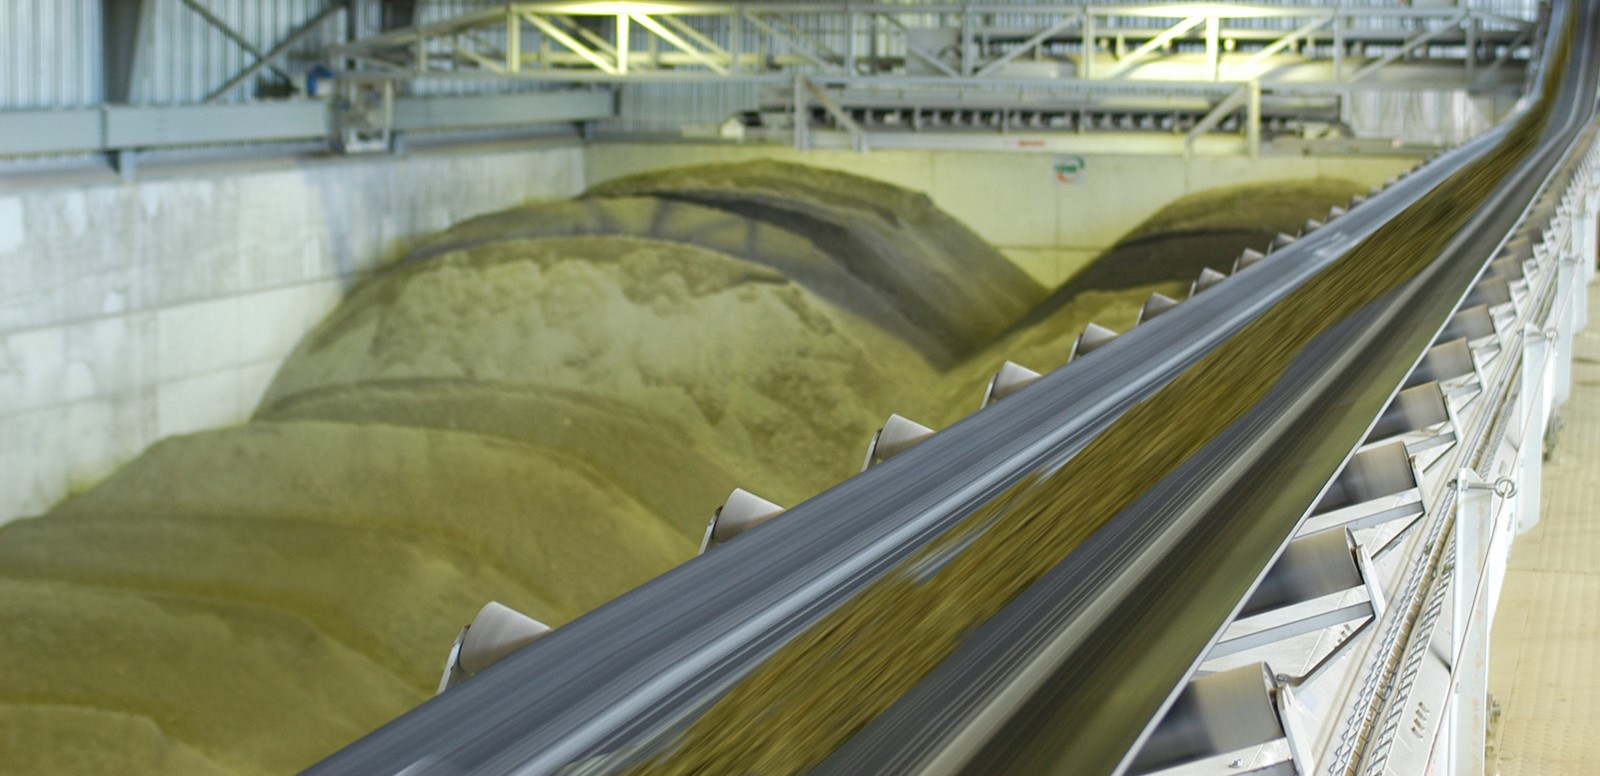 energy from waste facility conveyor belt